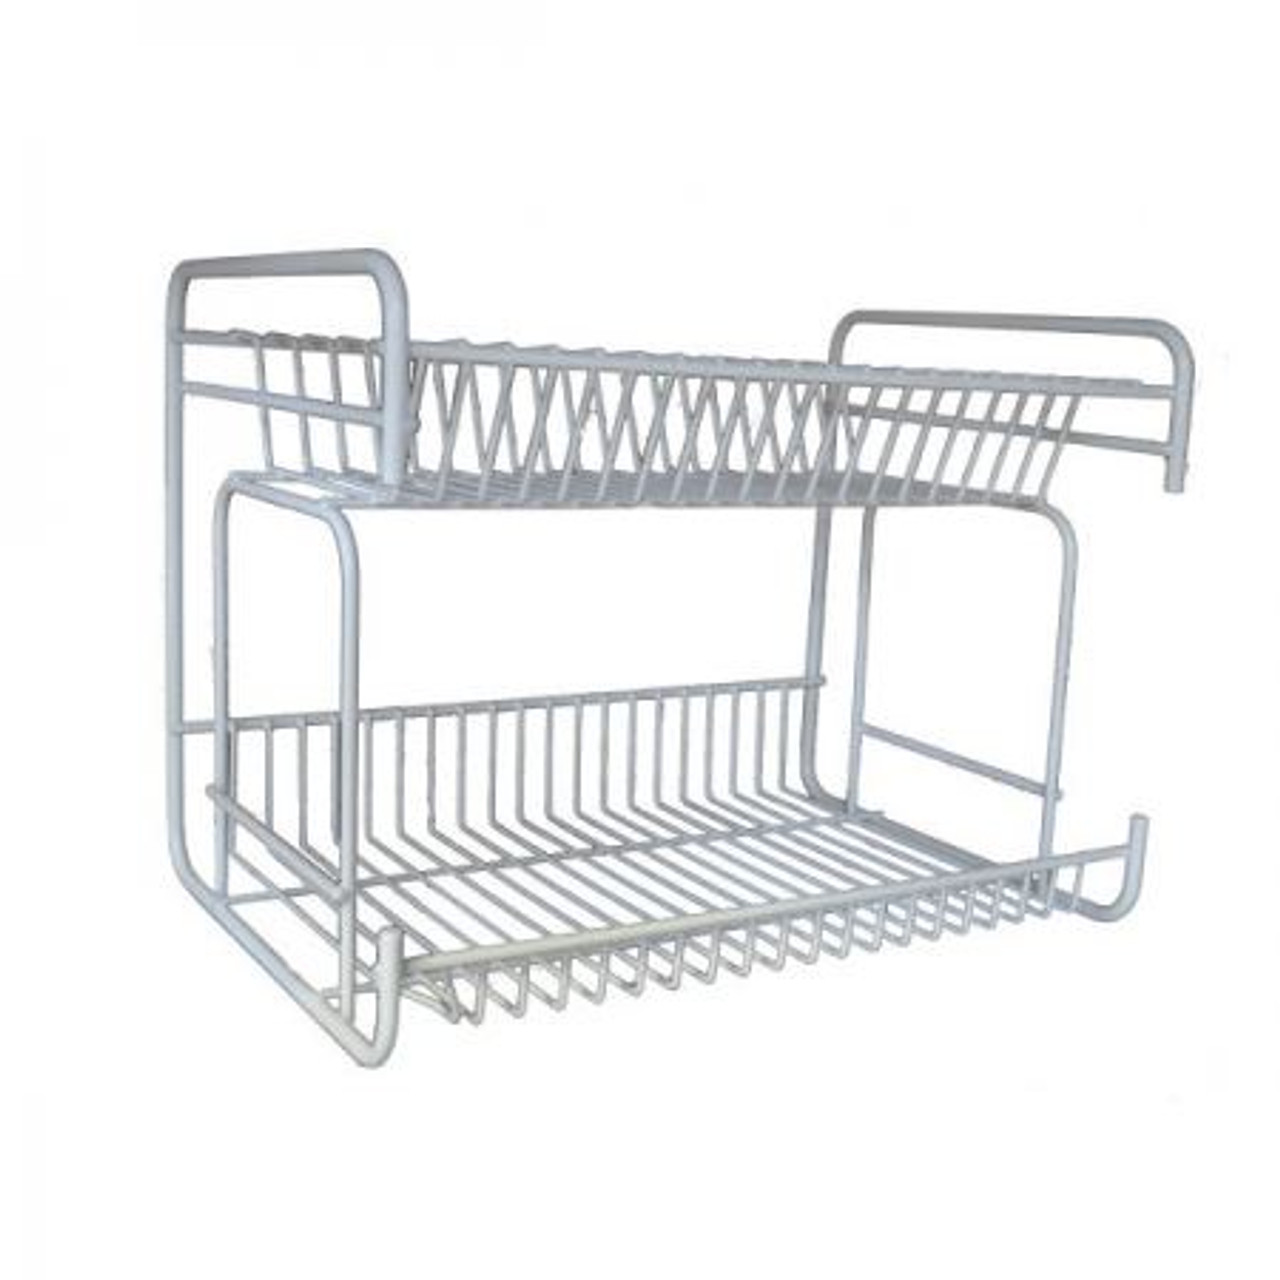 Delfinware 2 Tier Small Plate Rack